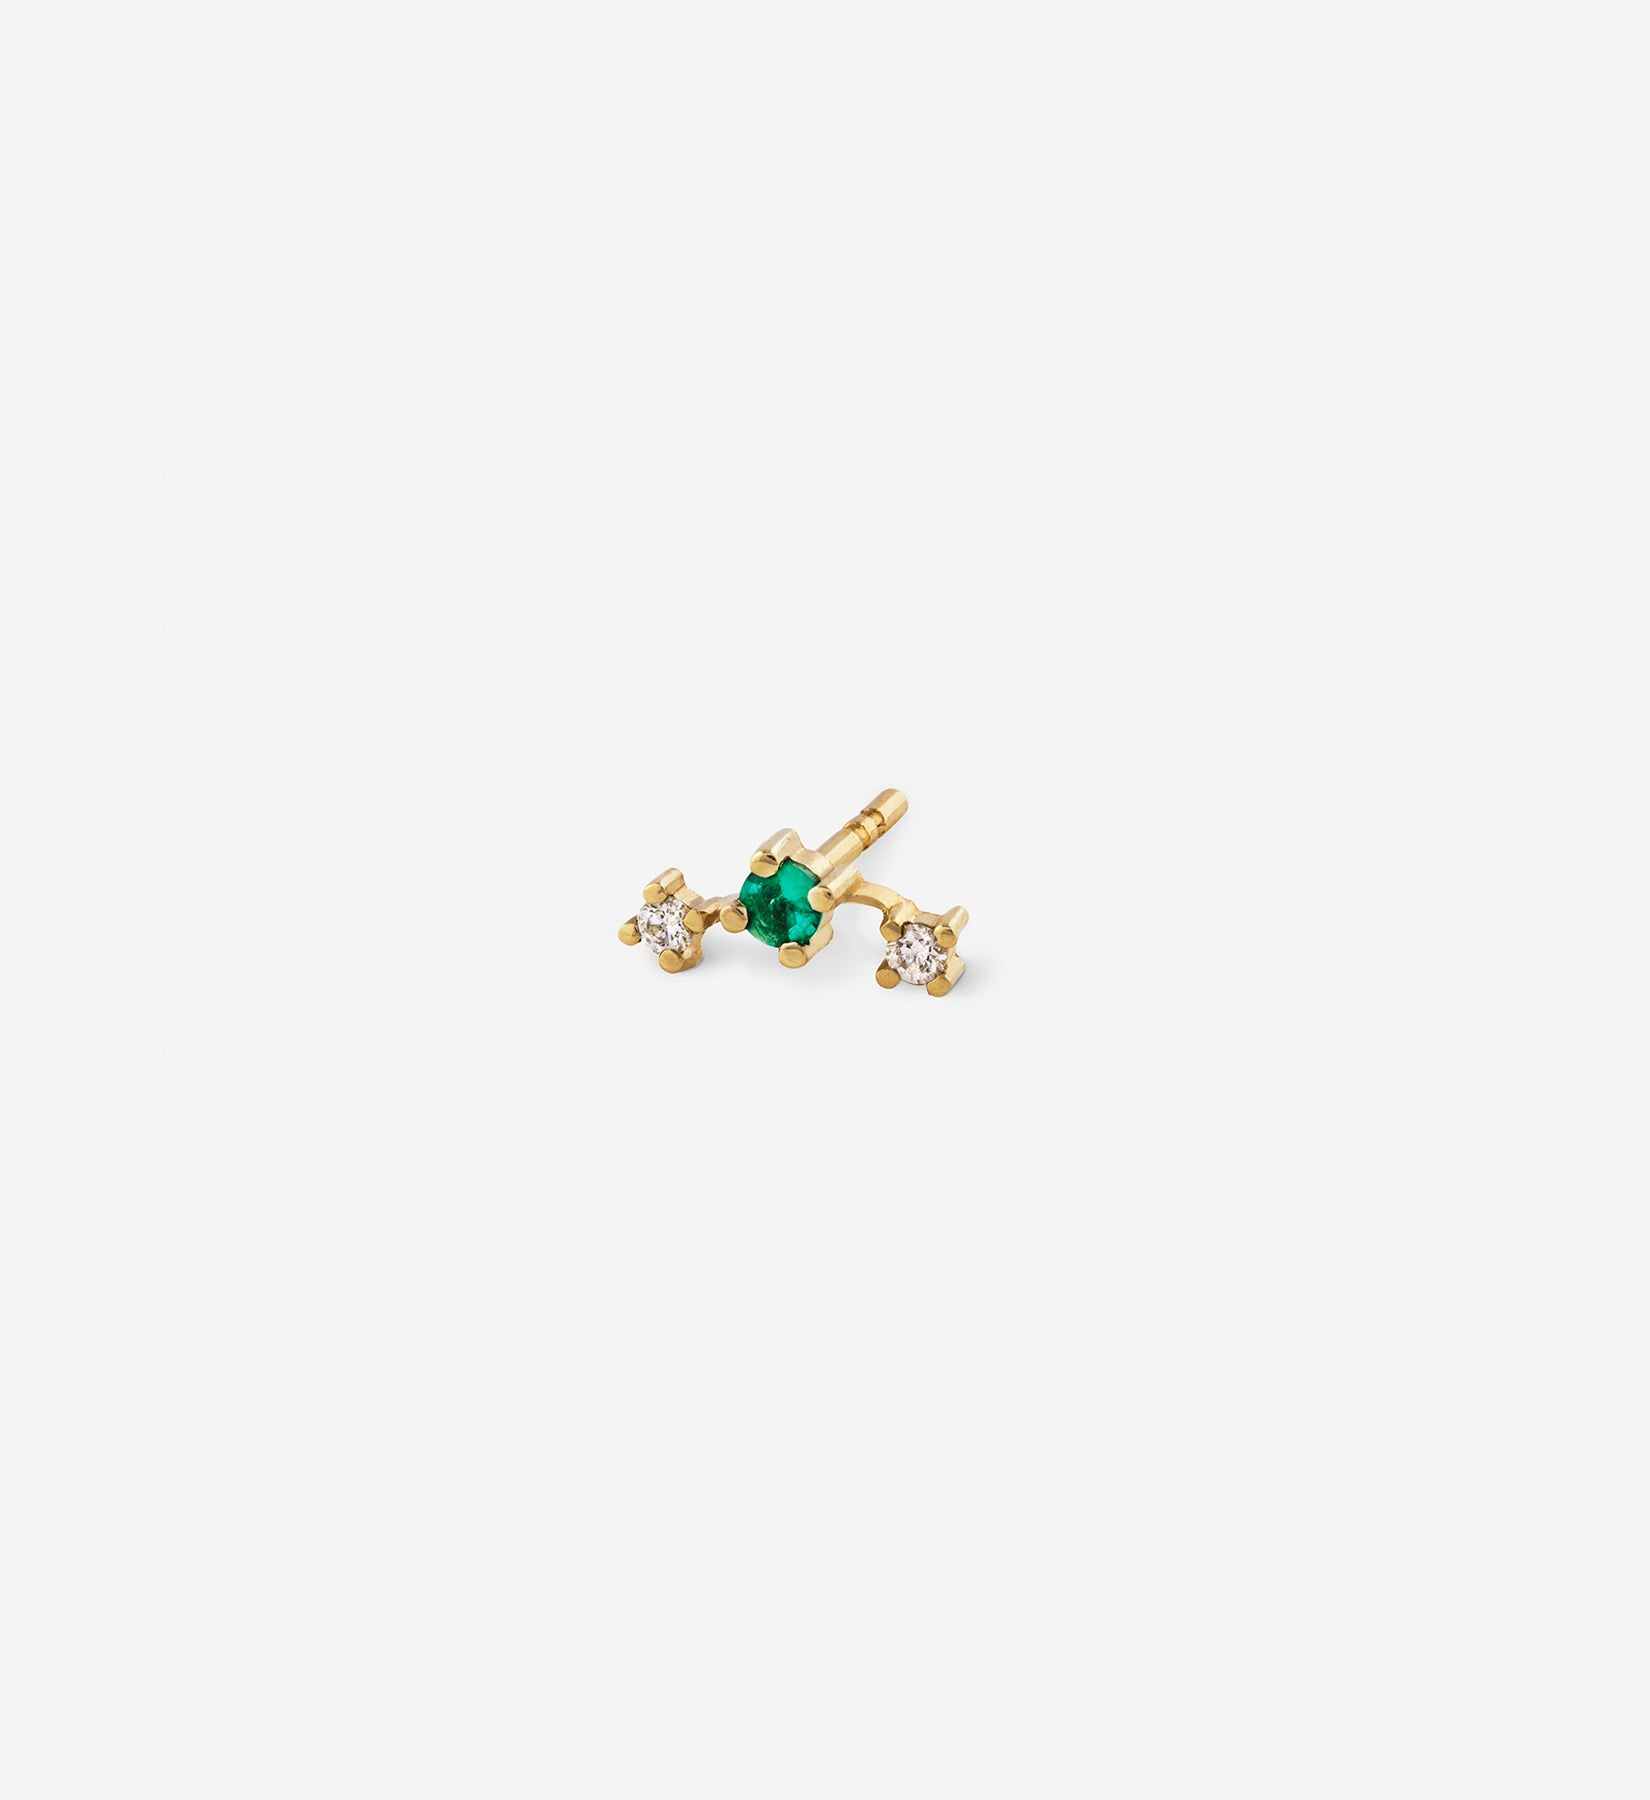 OUVERTURE, Fine jewelry, 14K gold, diamonds, golden ring, diamond ring, golden earring, diamond earring. Handcrafted jewelry. Designed in Berlin. Honestly priced. Demifine. Earparty. Stacking rings. Diamond Huggie, Huggie earring, golden huggie earring diamond line earring, emerald stud earring